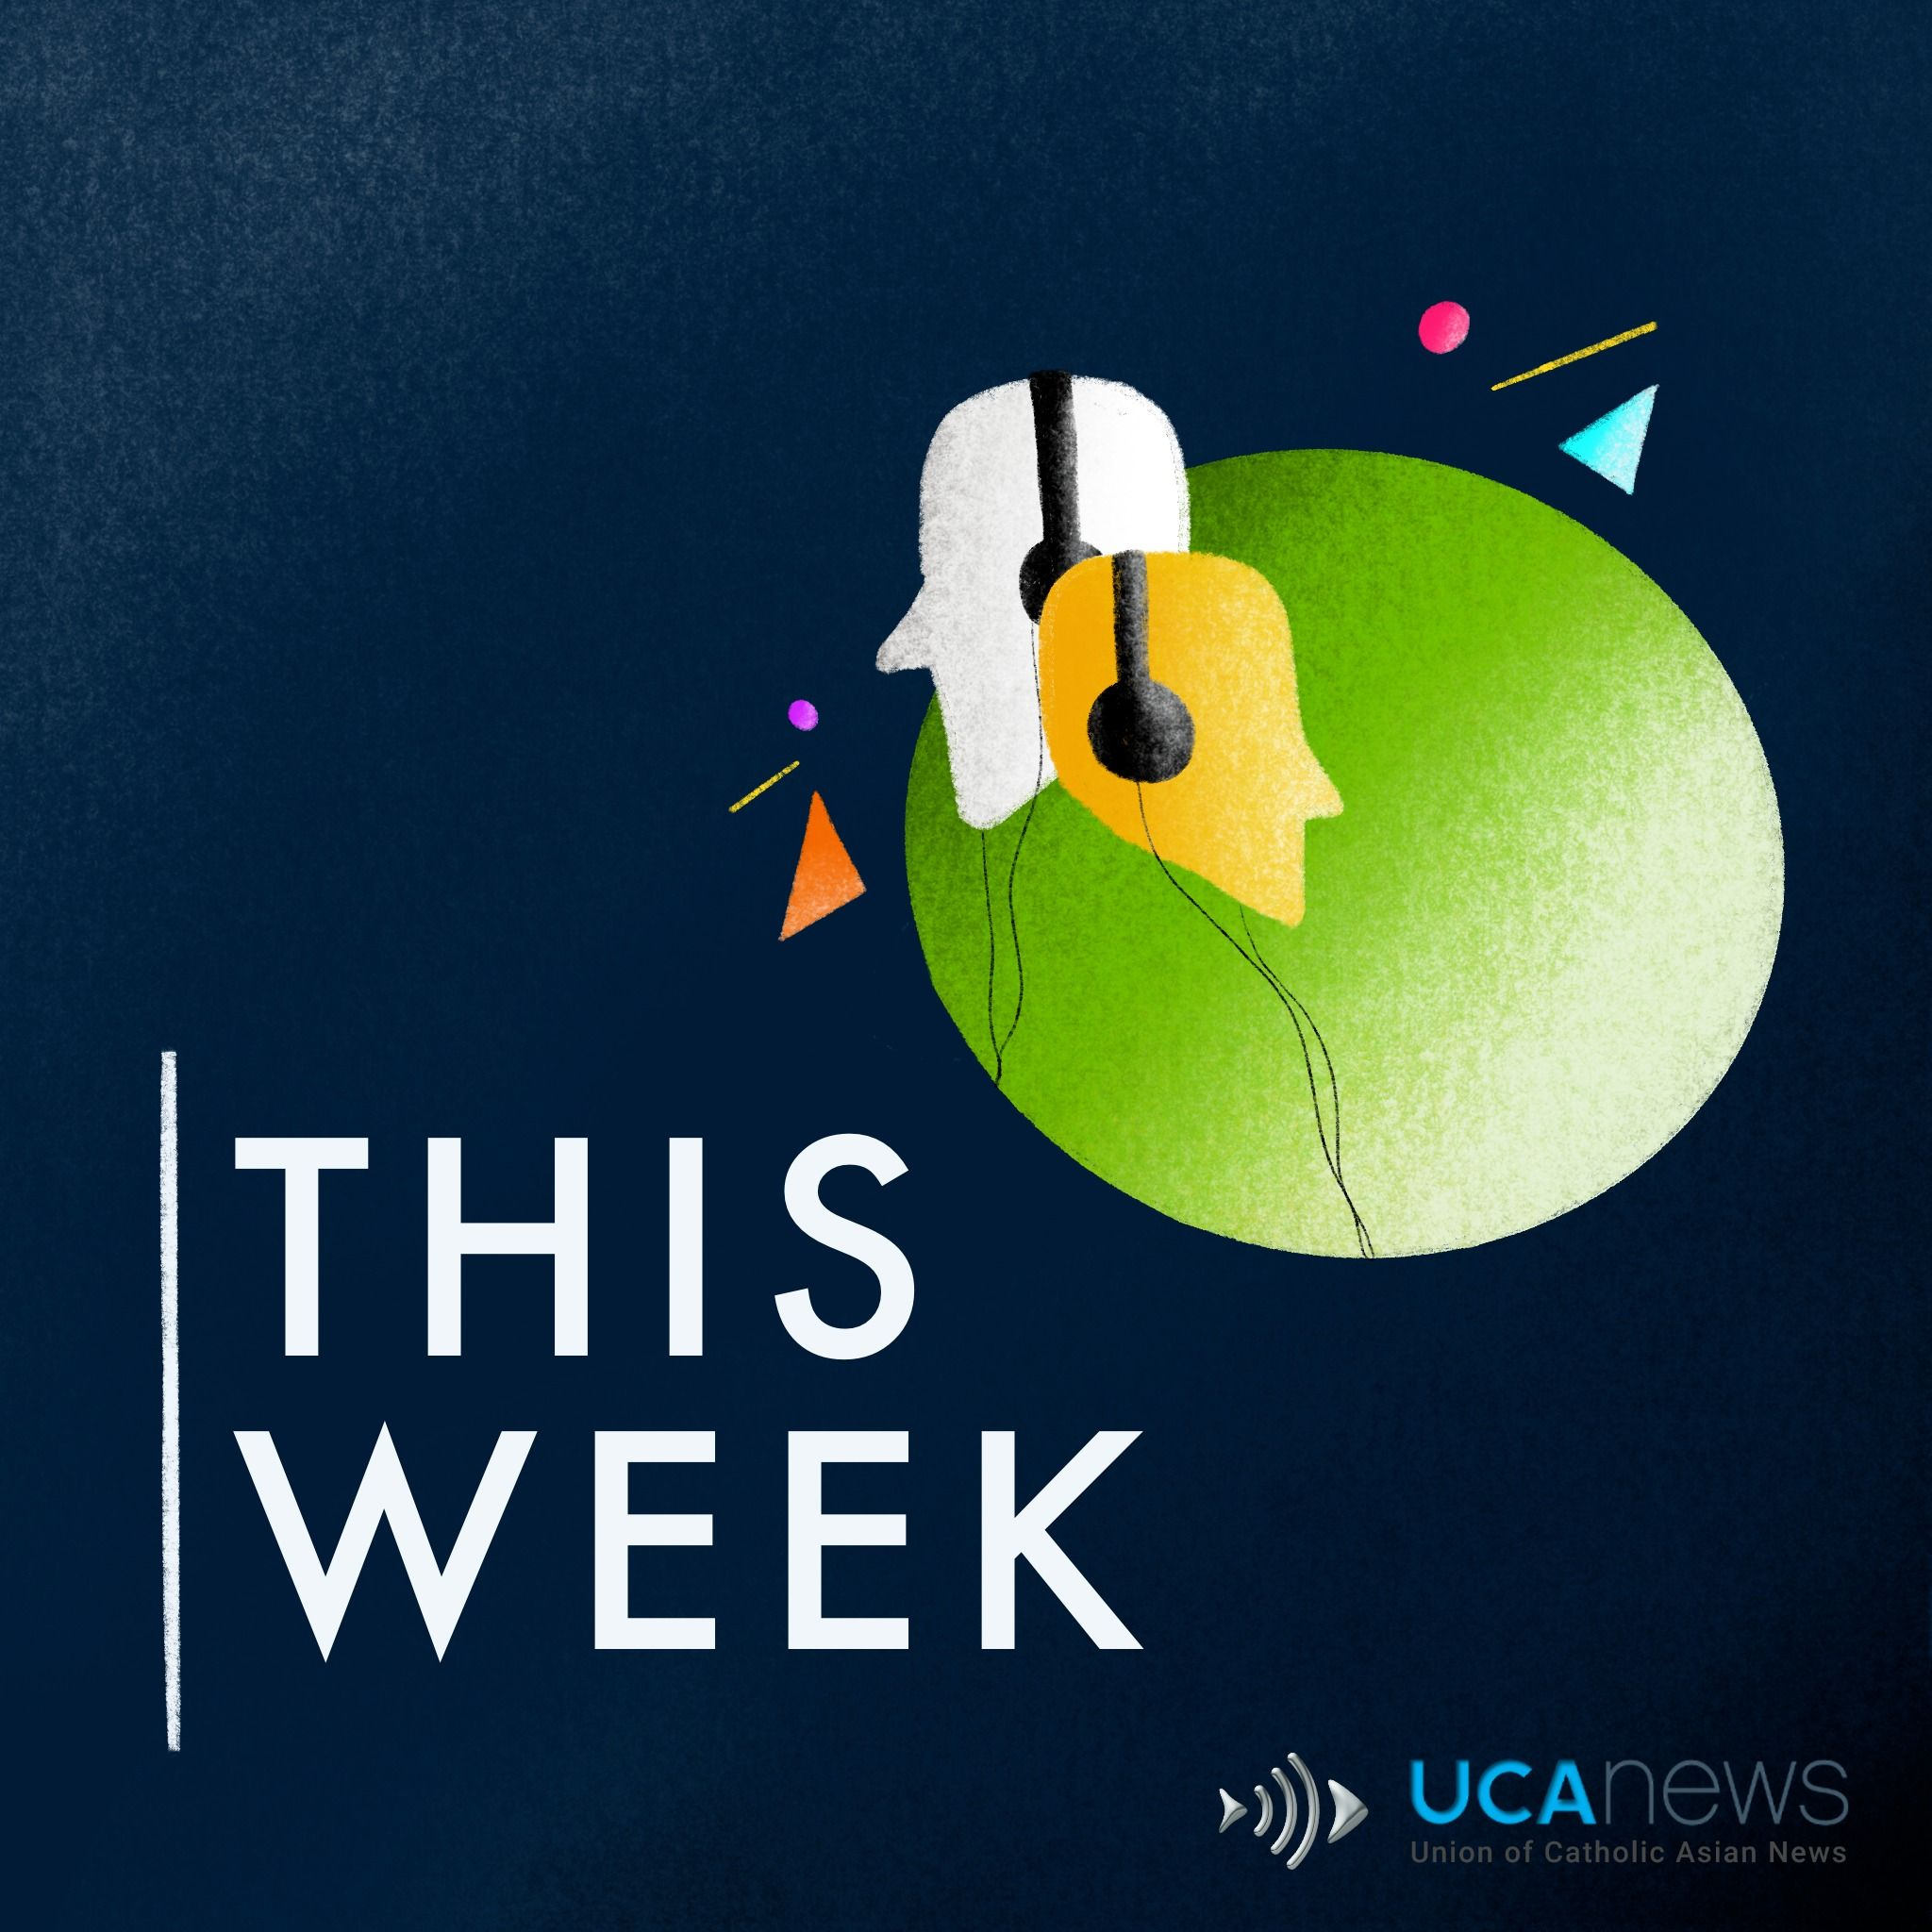 UCA News Weekly Summary, April 9, 2021